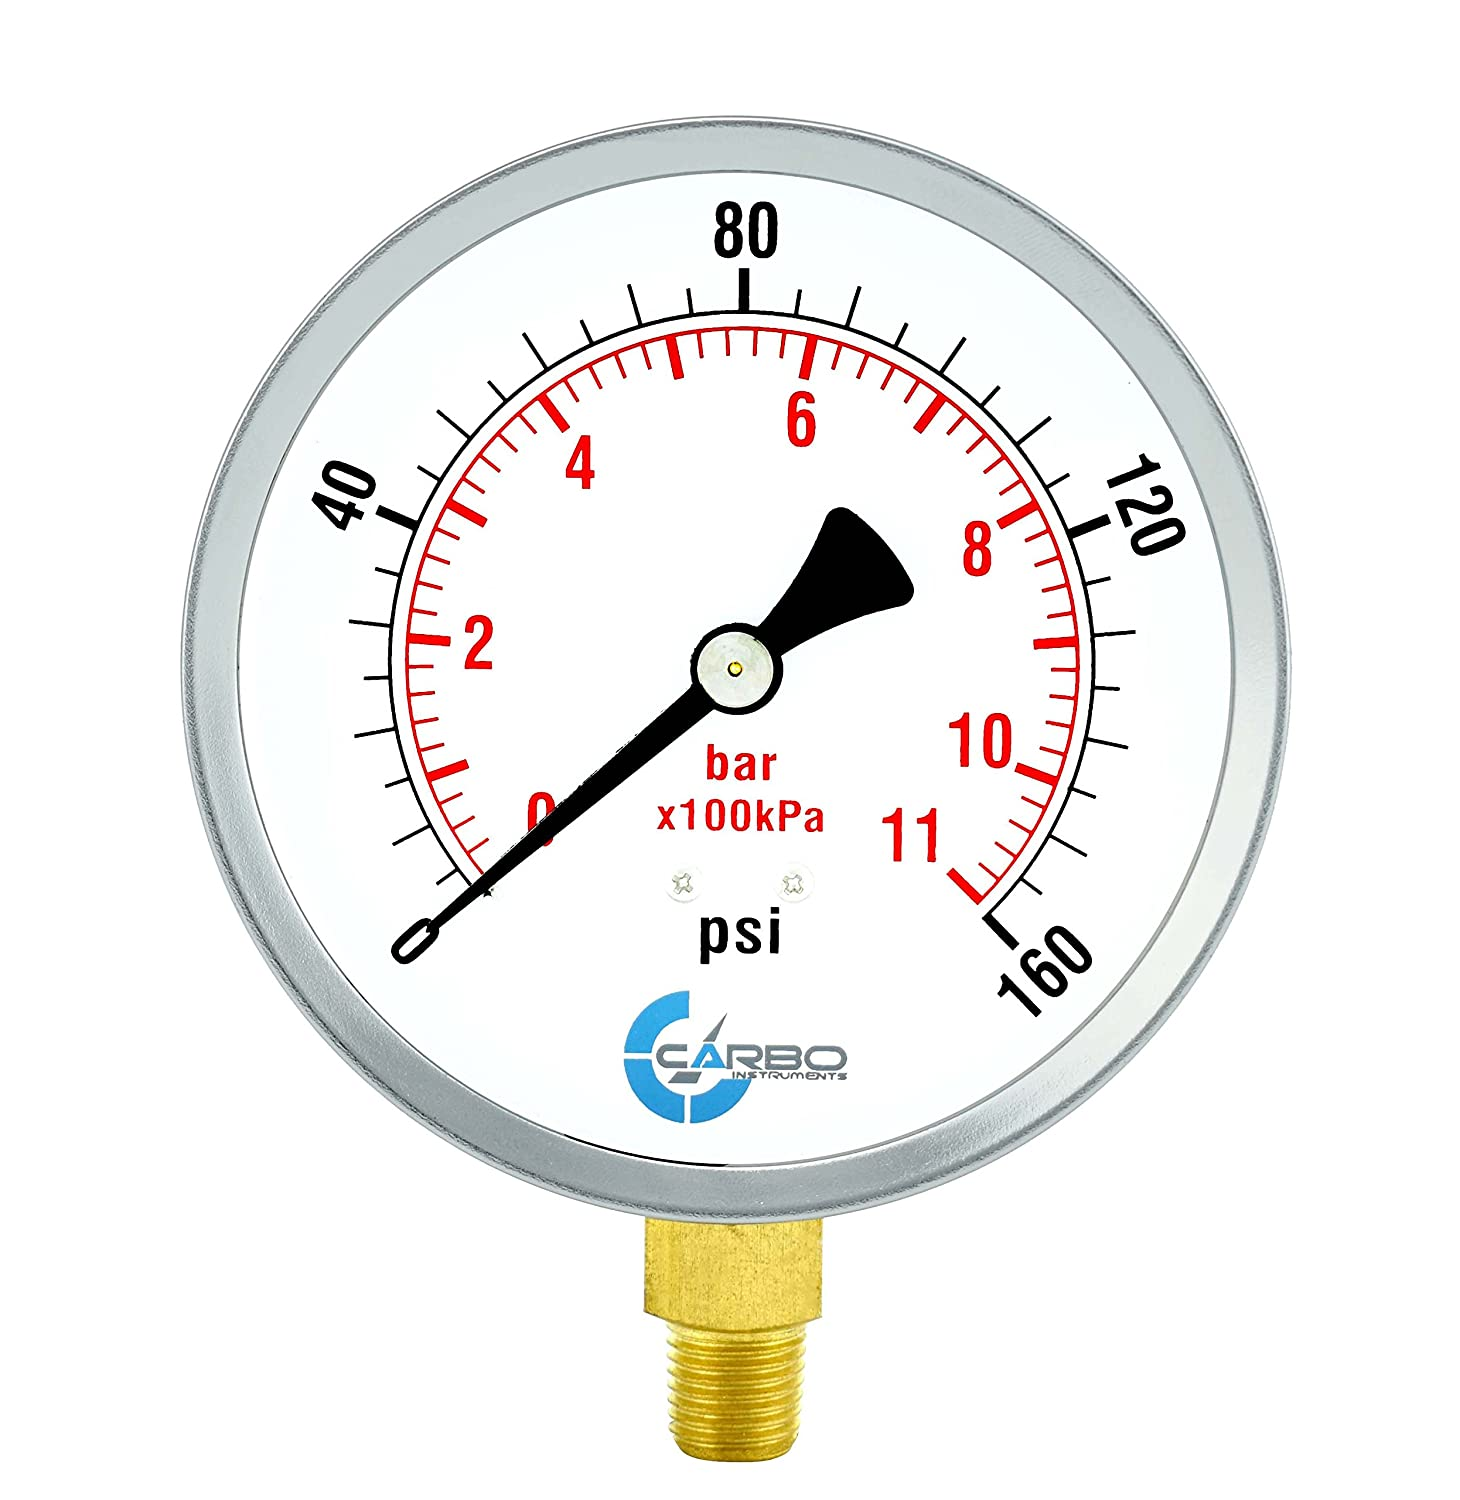 CARBO Instruments 2-1//2 Pressure Gauge Lower Mount 1//4 NPT 0-60 psi//kPa Dry Chrome Plated Steel Case